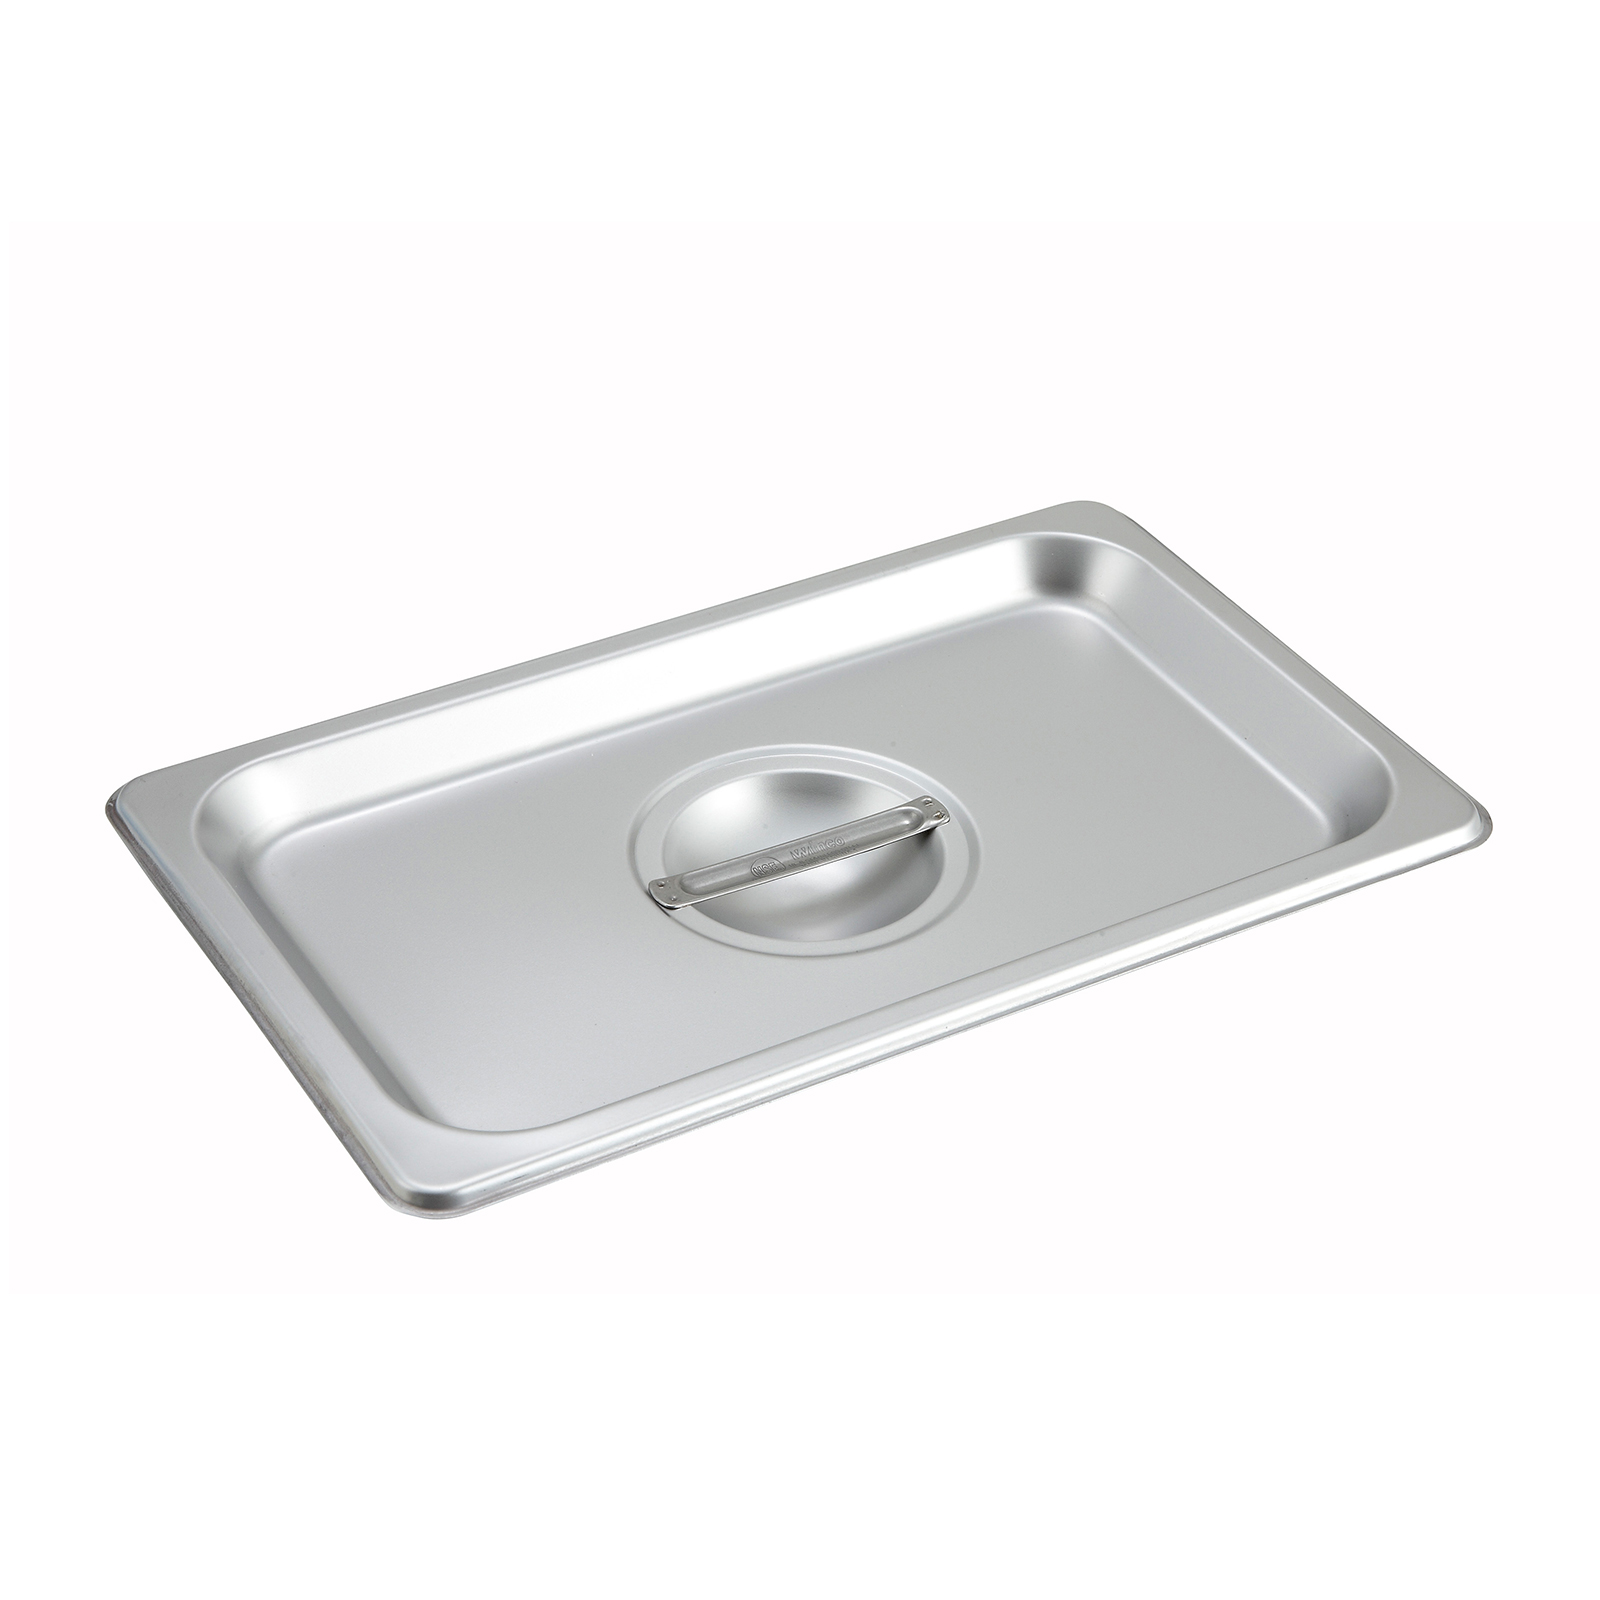 Winco SPSCQ steam table pan cover, stainless steel